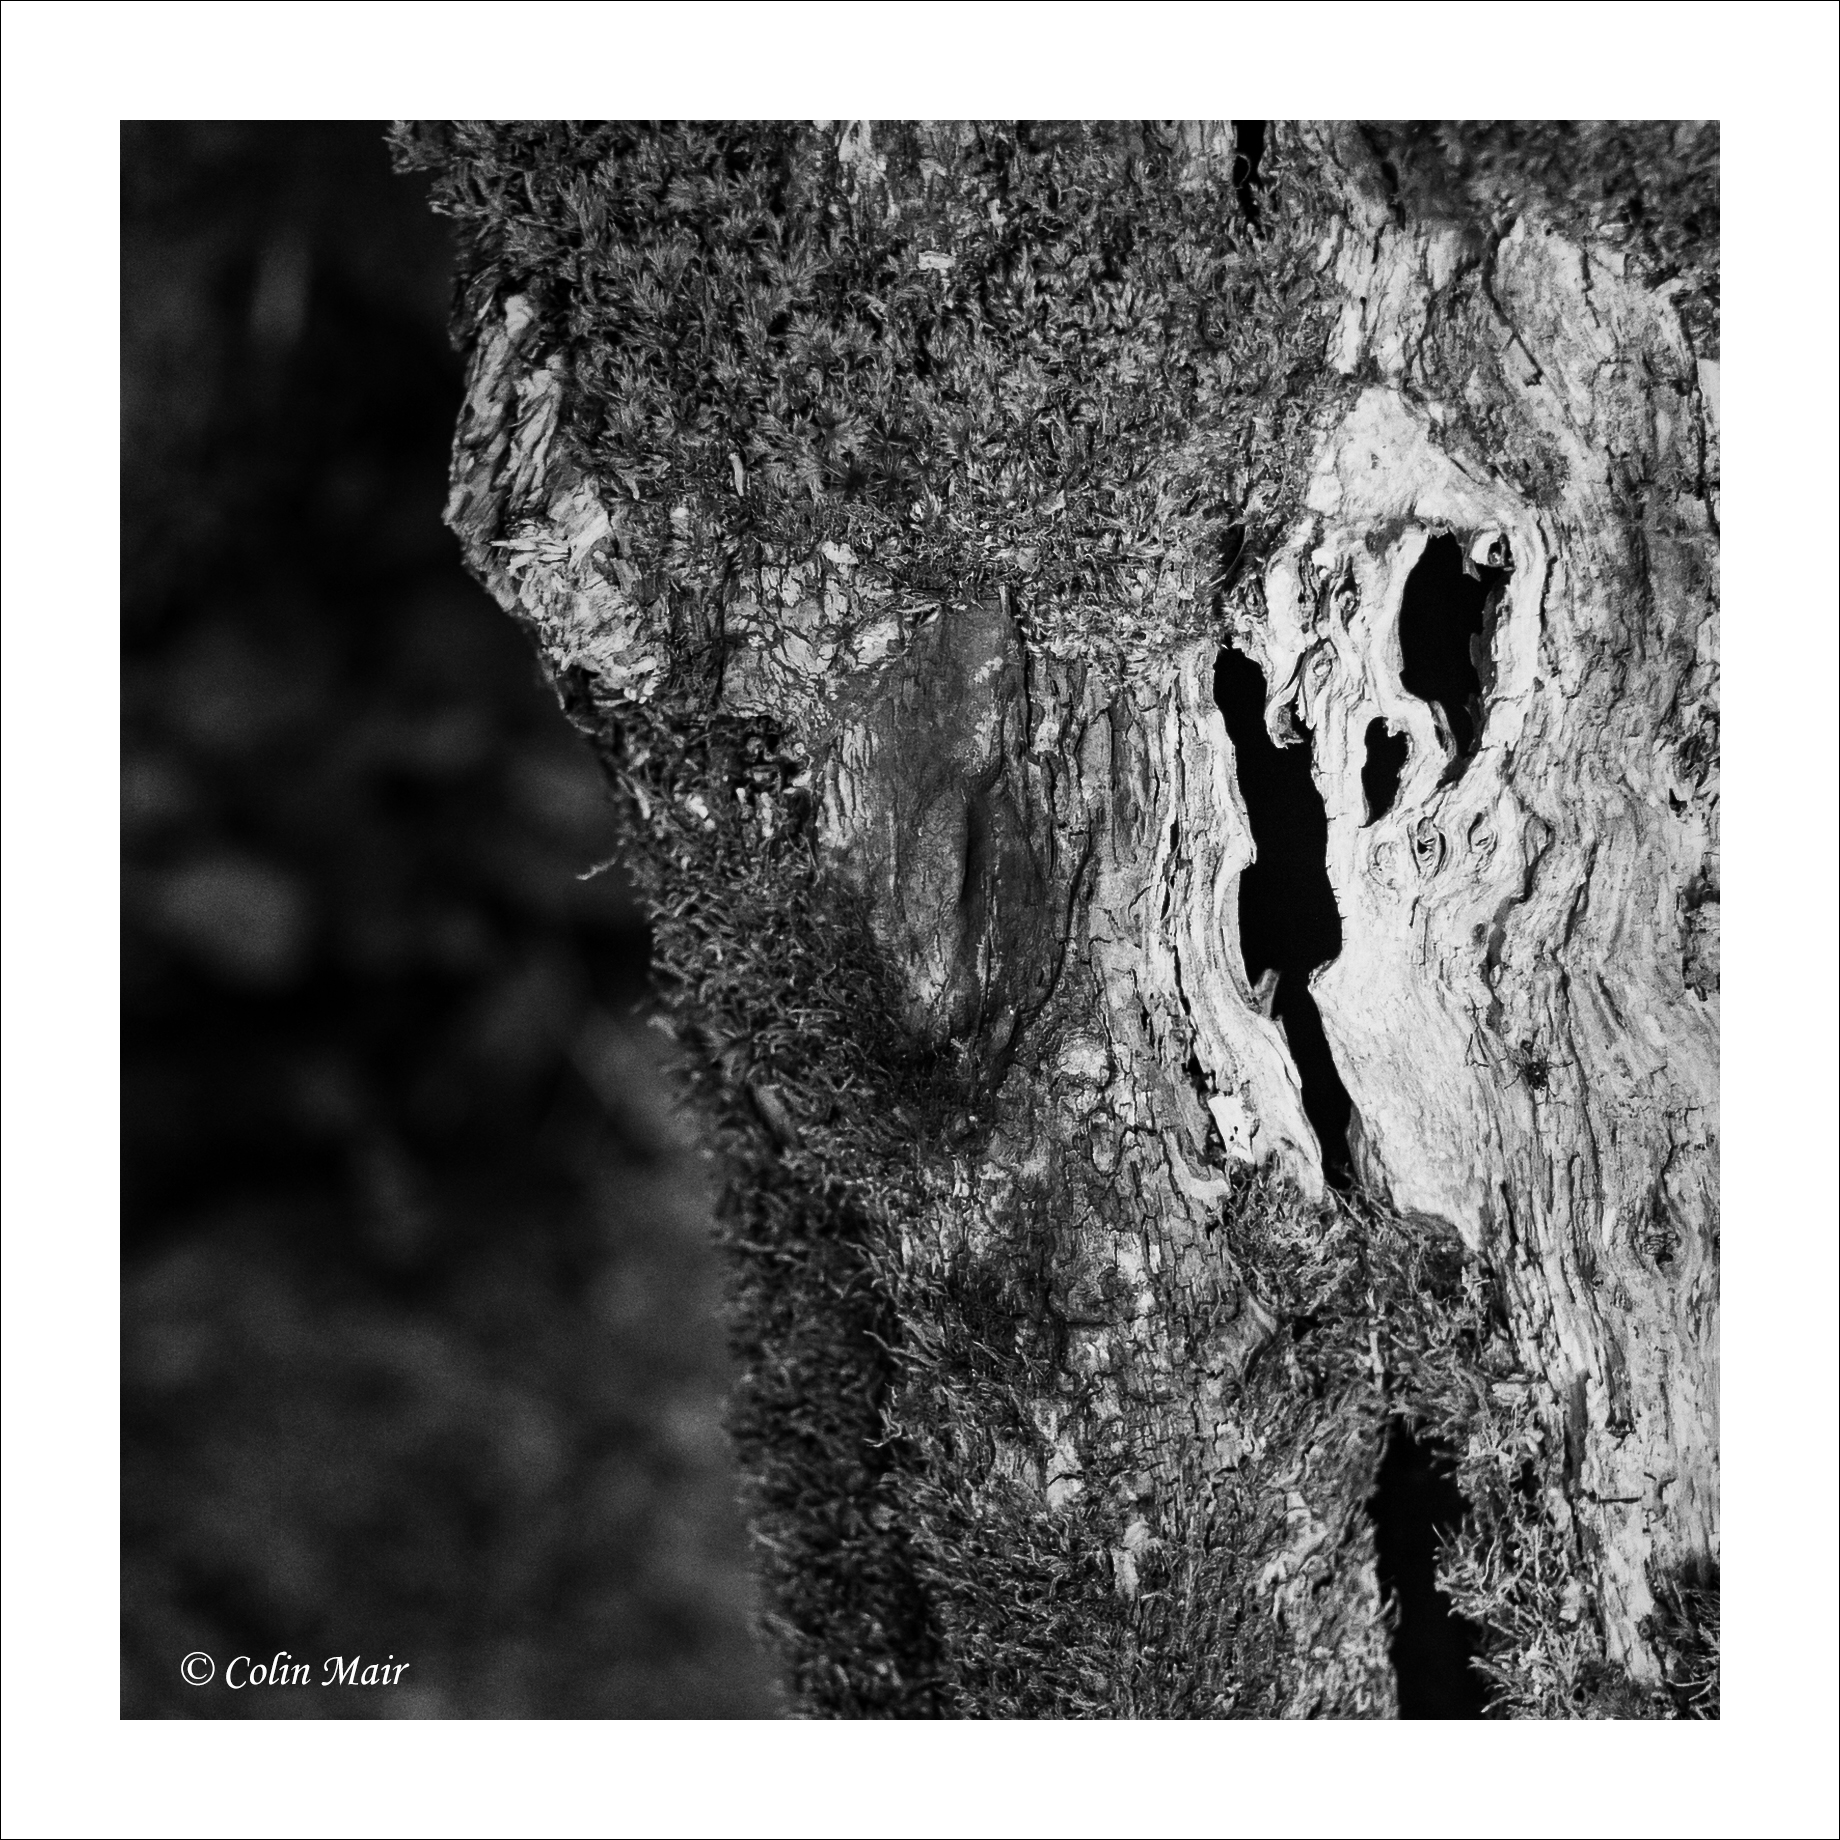 Decay - 2018-05-25th, _8A_01130, Helios 44-2, 58mm, f11, 1-60th,  Loch Doon, tree bark